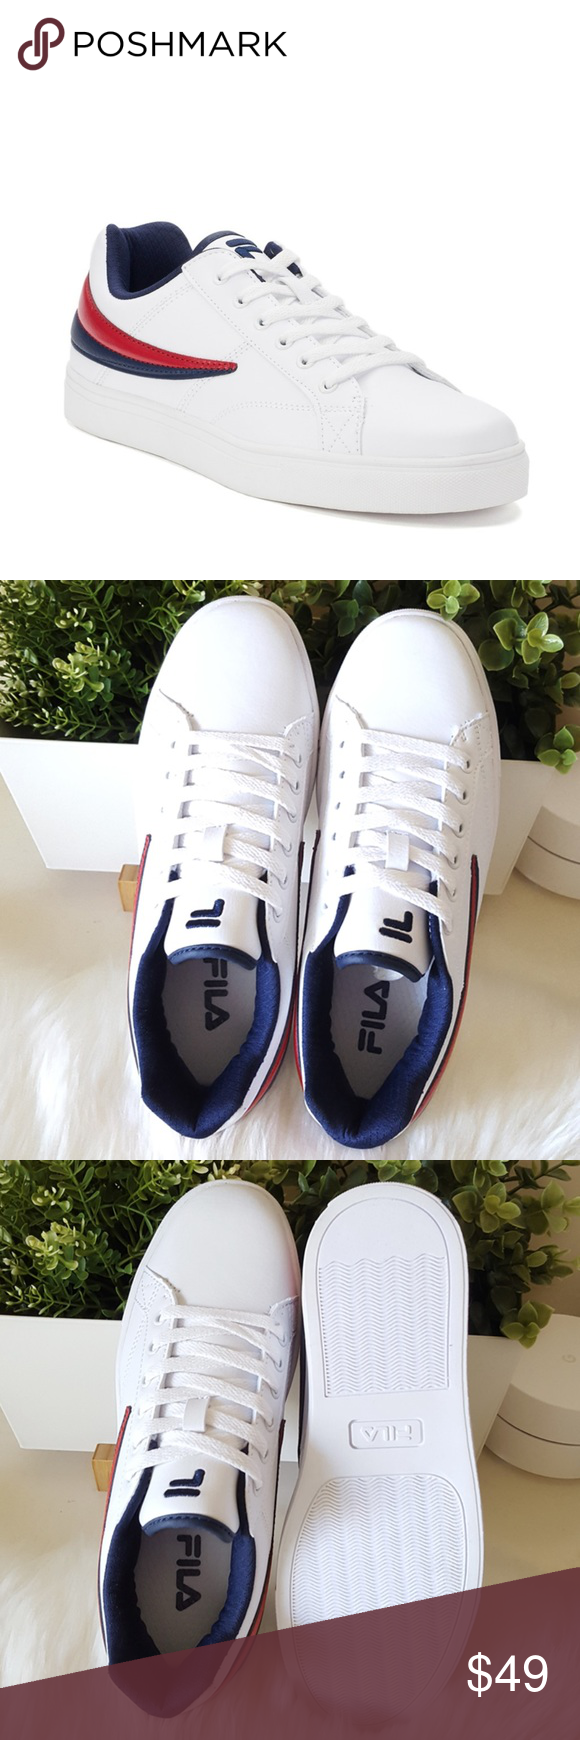 Fila Smokescreen Low Sneakers Brand new with Tag SHOE